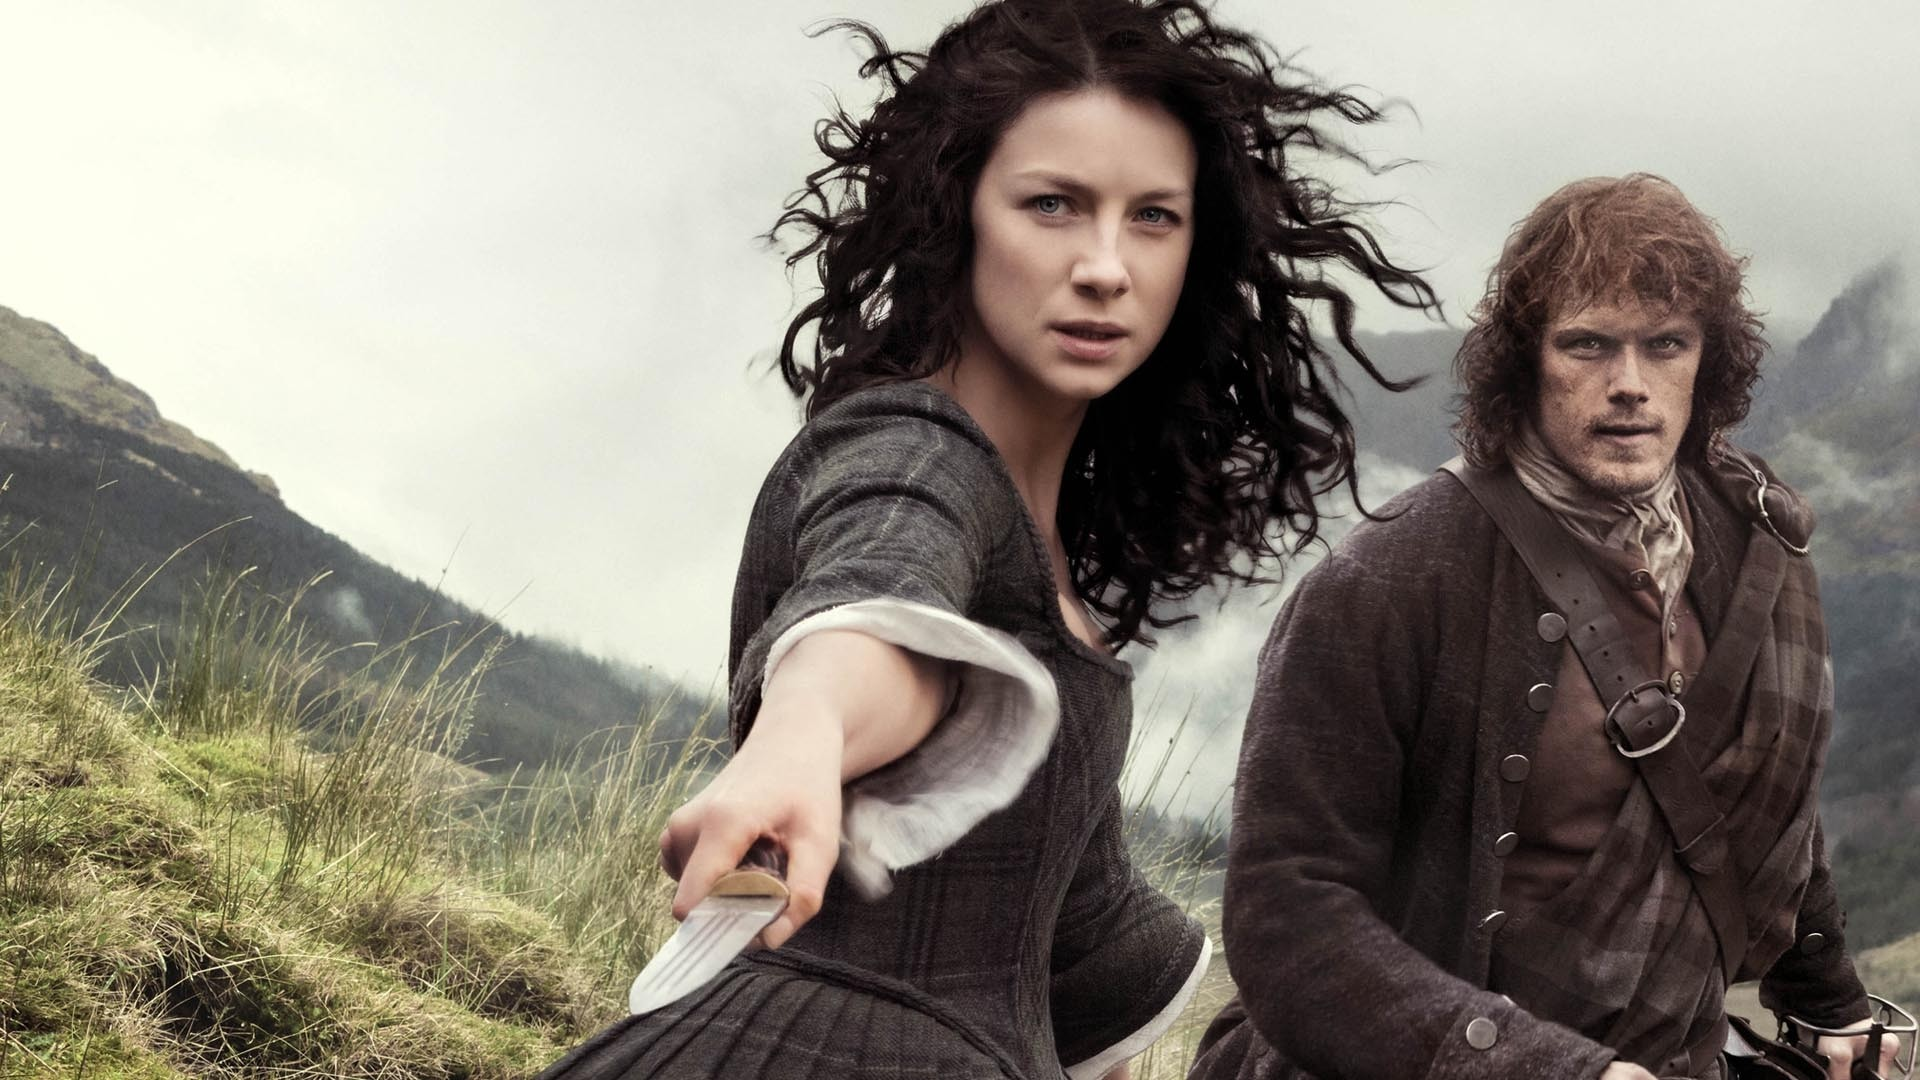 1920x1080 Outlander Source: Keys: outlander, television, wallpaper, wallpapers.  Submitted Anonymously 3 years ago